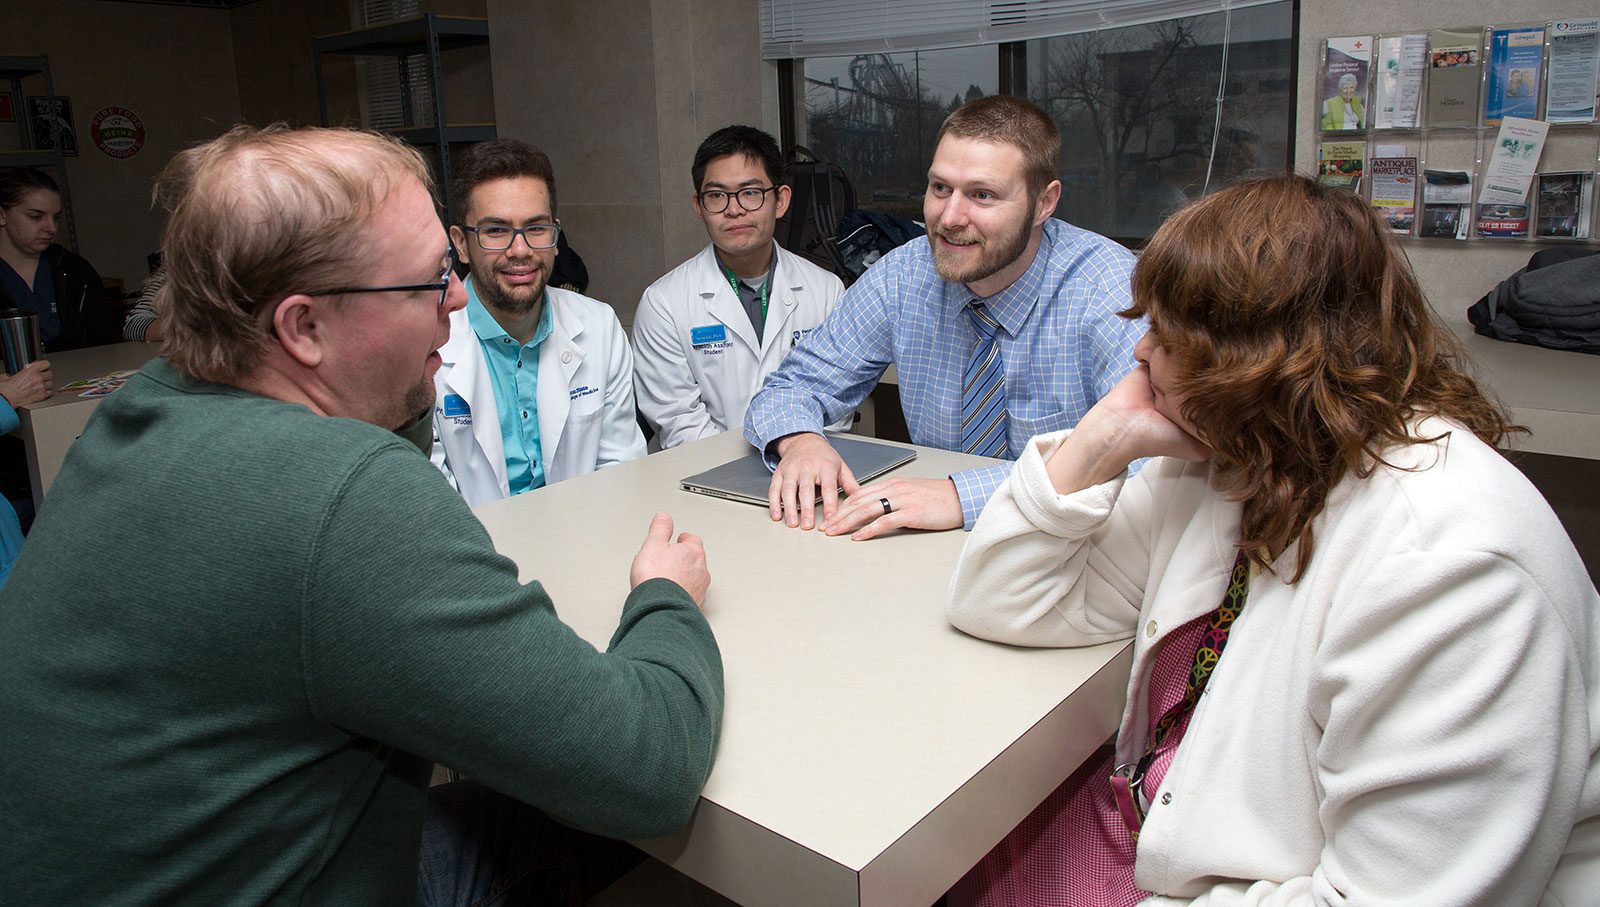 Penn State College of Medicine students work with people at Hershey Plaza Apartments as part of a health fair event. The students are pictured sitting around a square table.